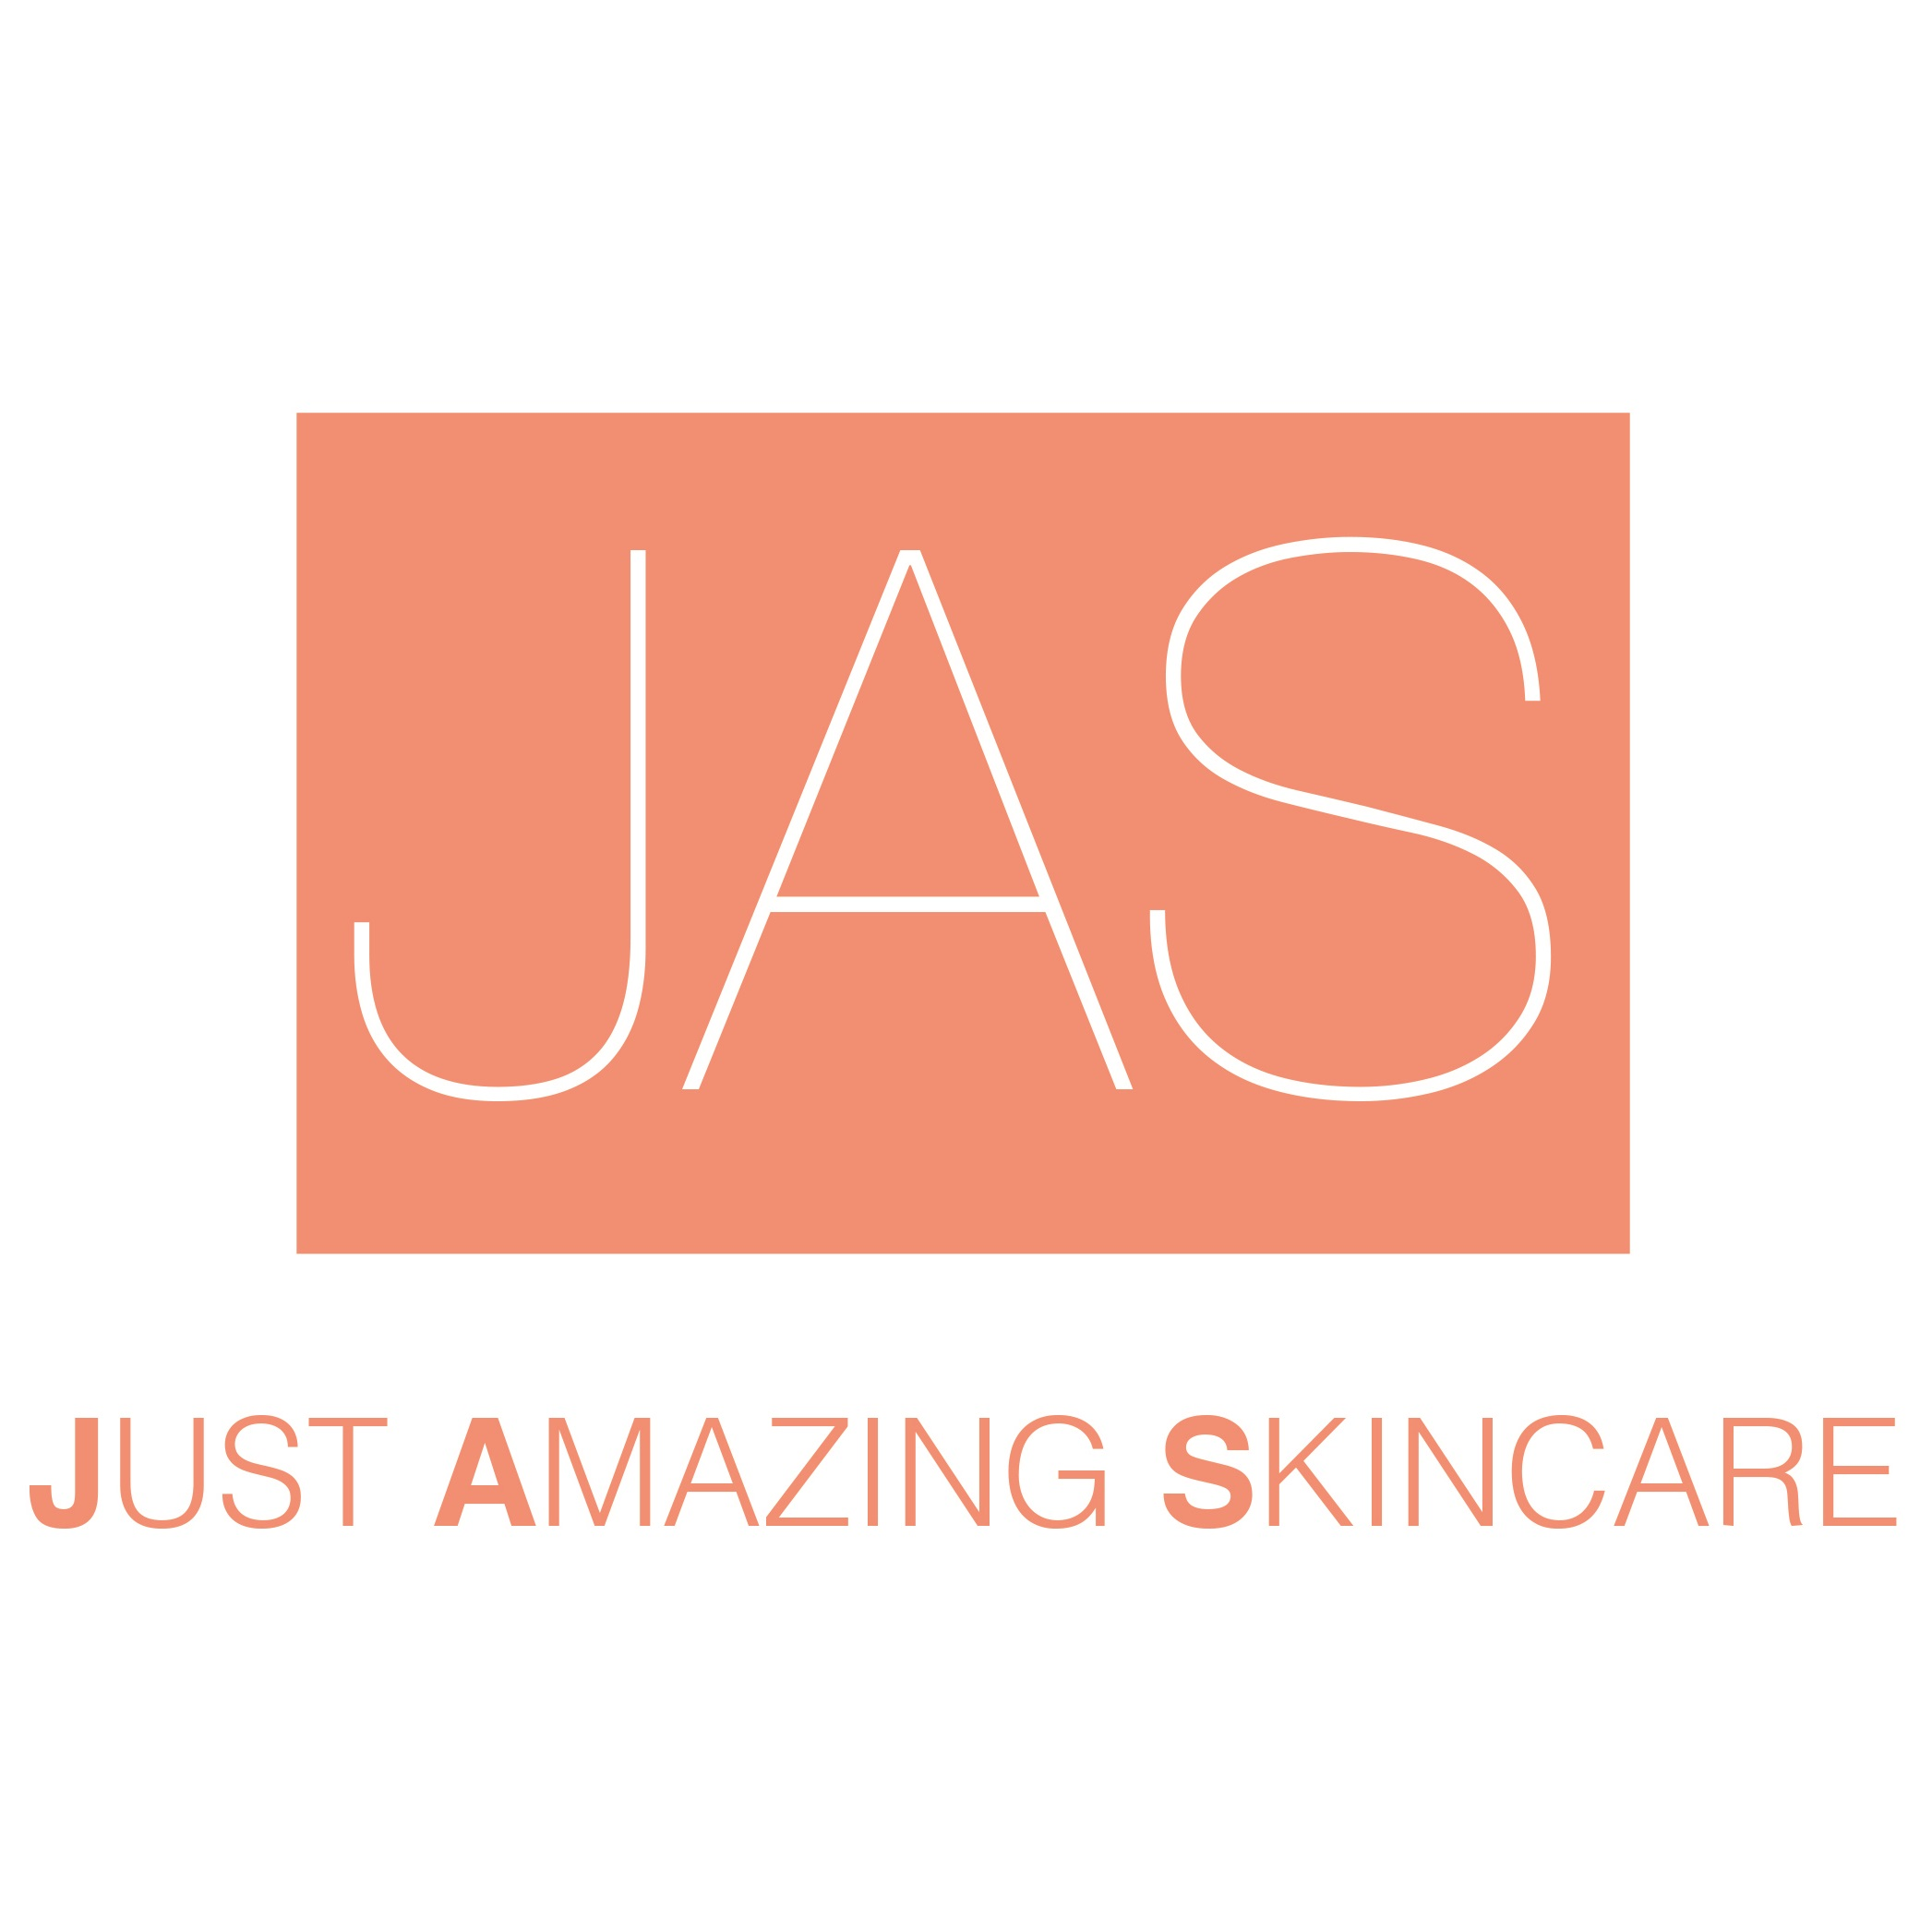 JAS - Just Amazing Skincare